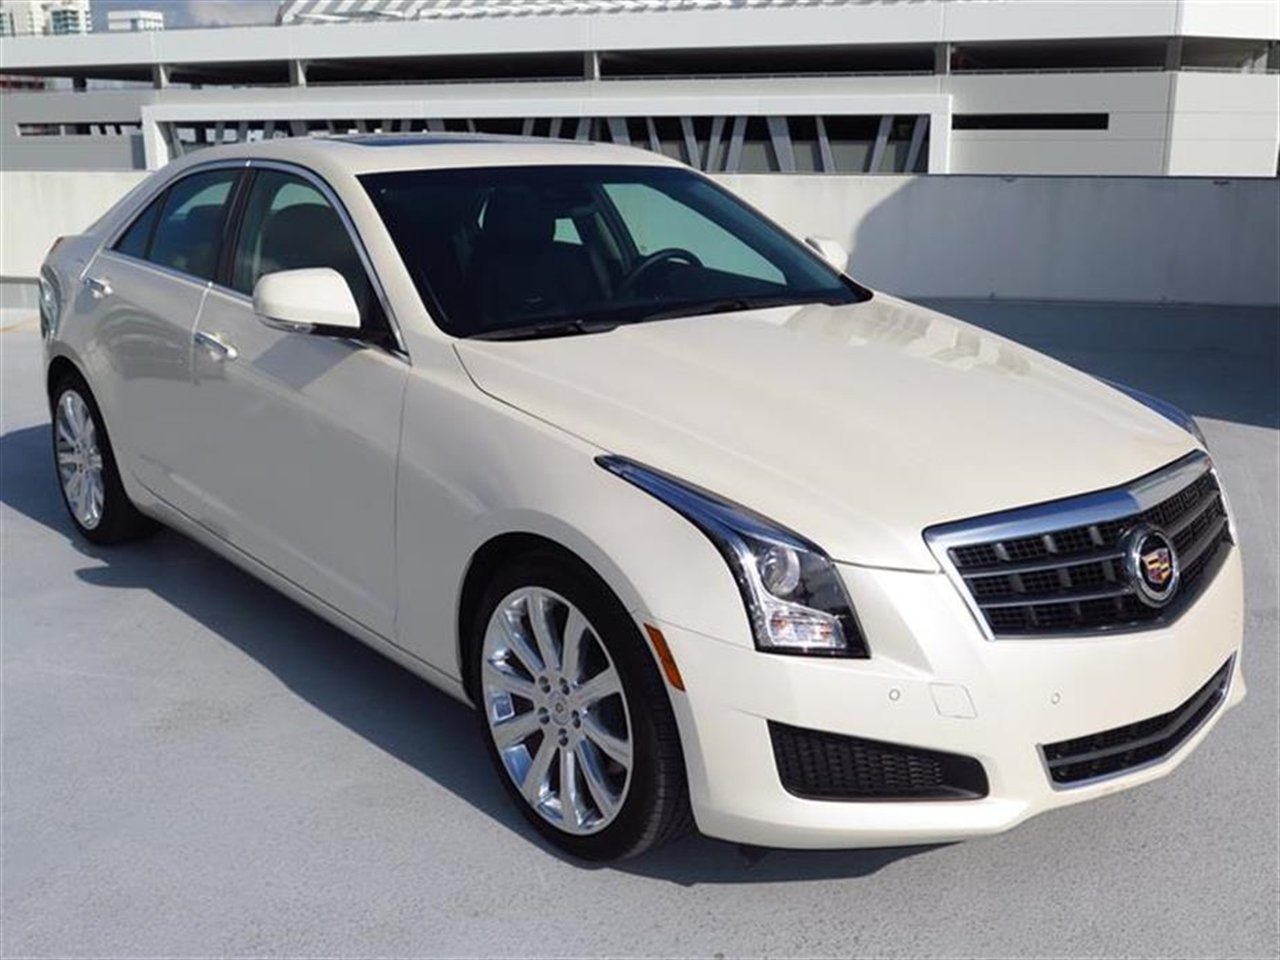 2014 CADILLAC ATS 4dr Sdn 20L Luxury RWD 10398 miles Adaptive Remote Start Not available with M